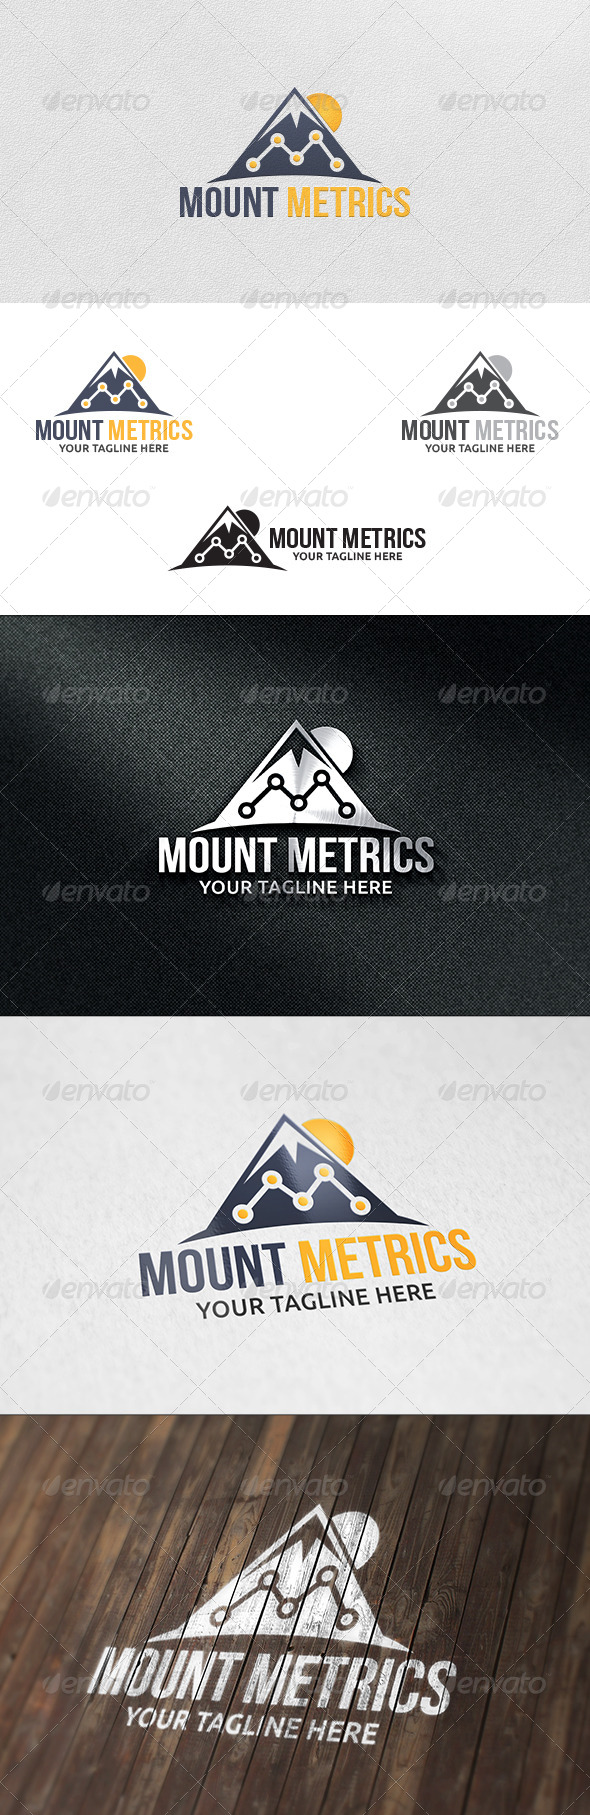 Mountain Metrics - Logo Template - Nature Logo Templates